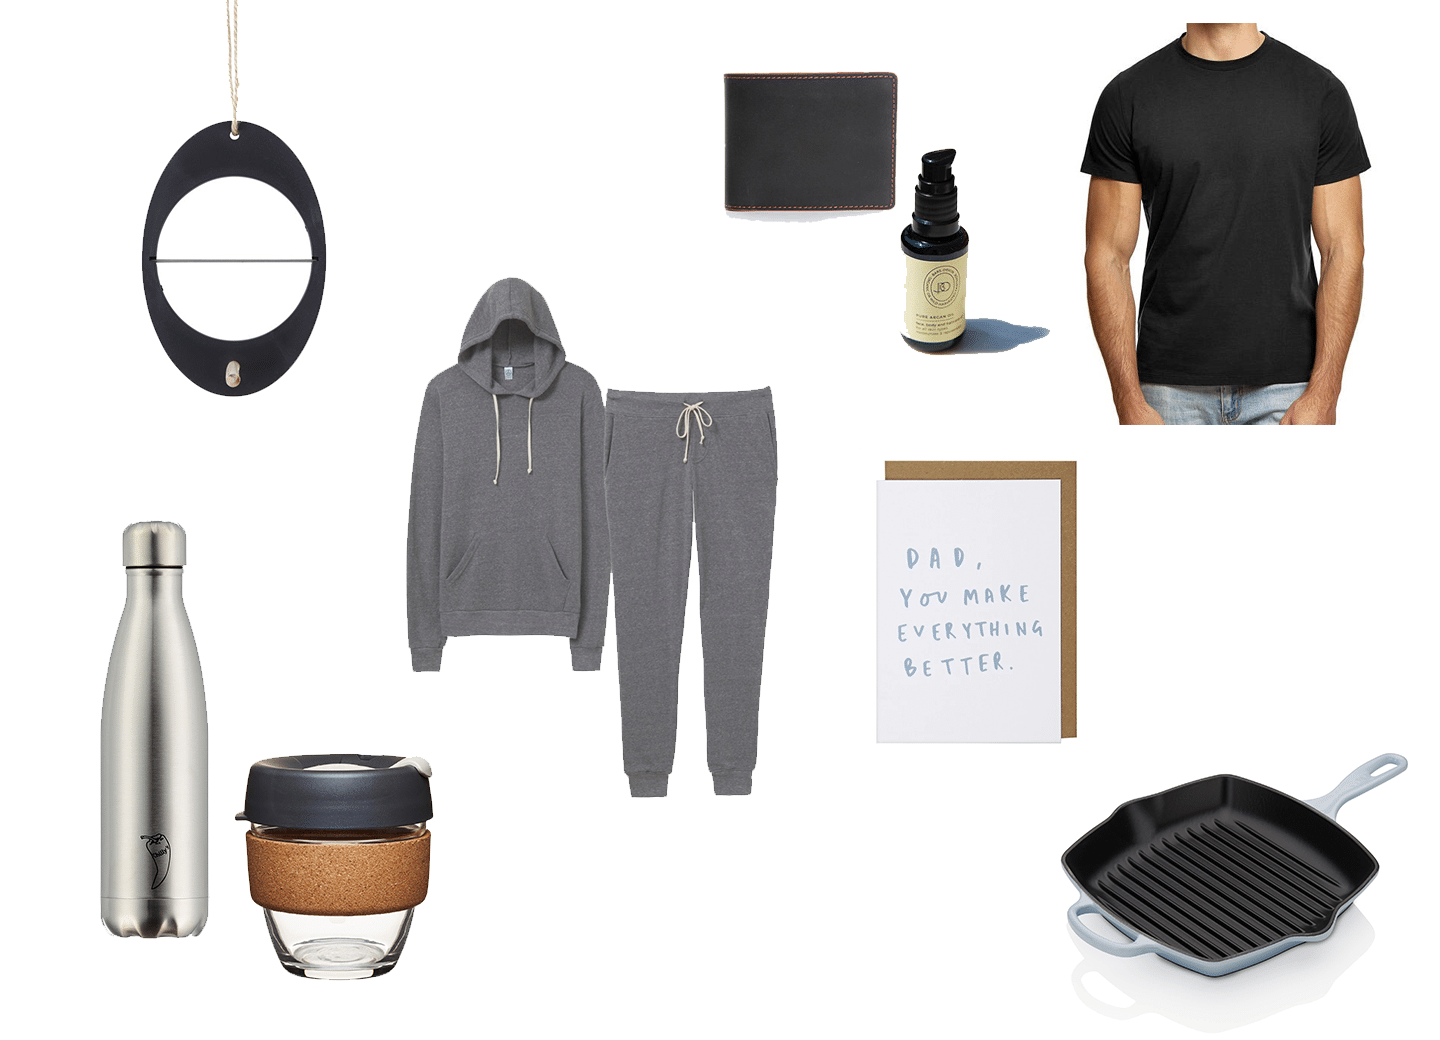 Fair Gift Ideas for Father's Day | Curiously Conscious